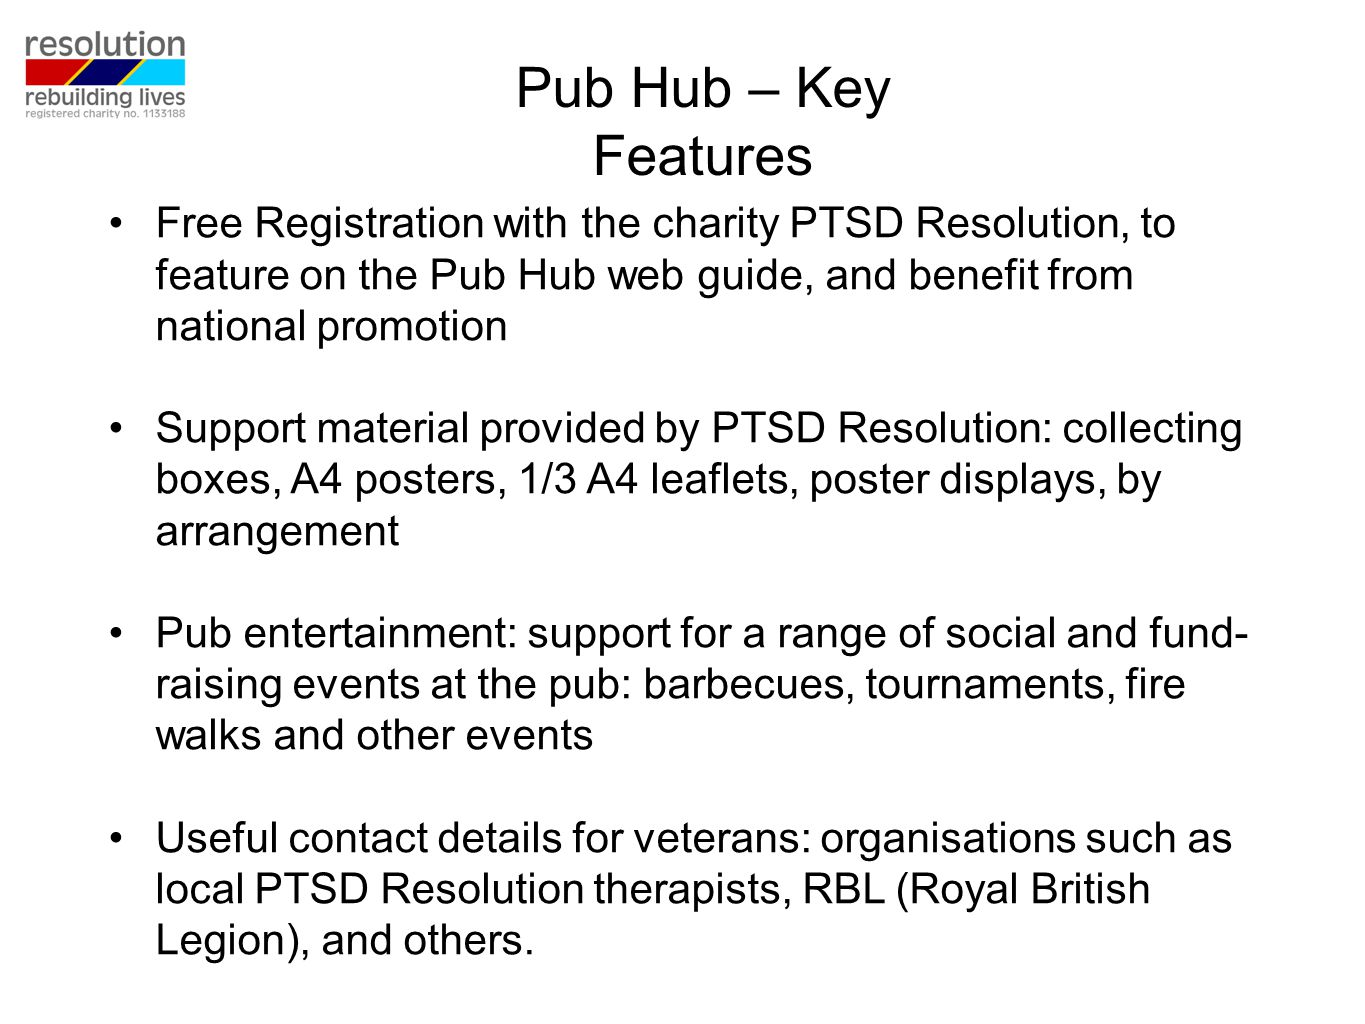 Free Registration with the charity PTSD Resolution, to feature on the Pub Hub web guide, and benefit from national promotion Support material provided by PTSD Resolution: collecting boxes, A4 posters, 1/3 A4 leaflets, poster displays, by arrangement Pub entertainment: support for a range of social and fund- raising events at the pub: barbecues, tournaments, fire walks and other events Useful contact details for veterans: organisations such as local PTSD Resolution therapists, RBL (Royal British Legion), and others.